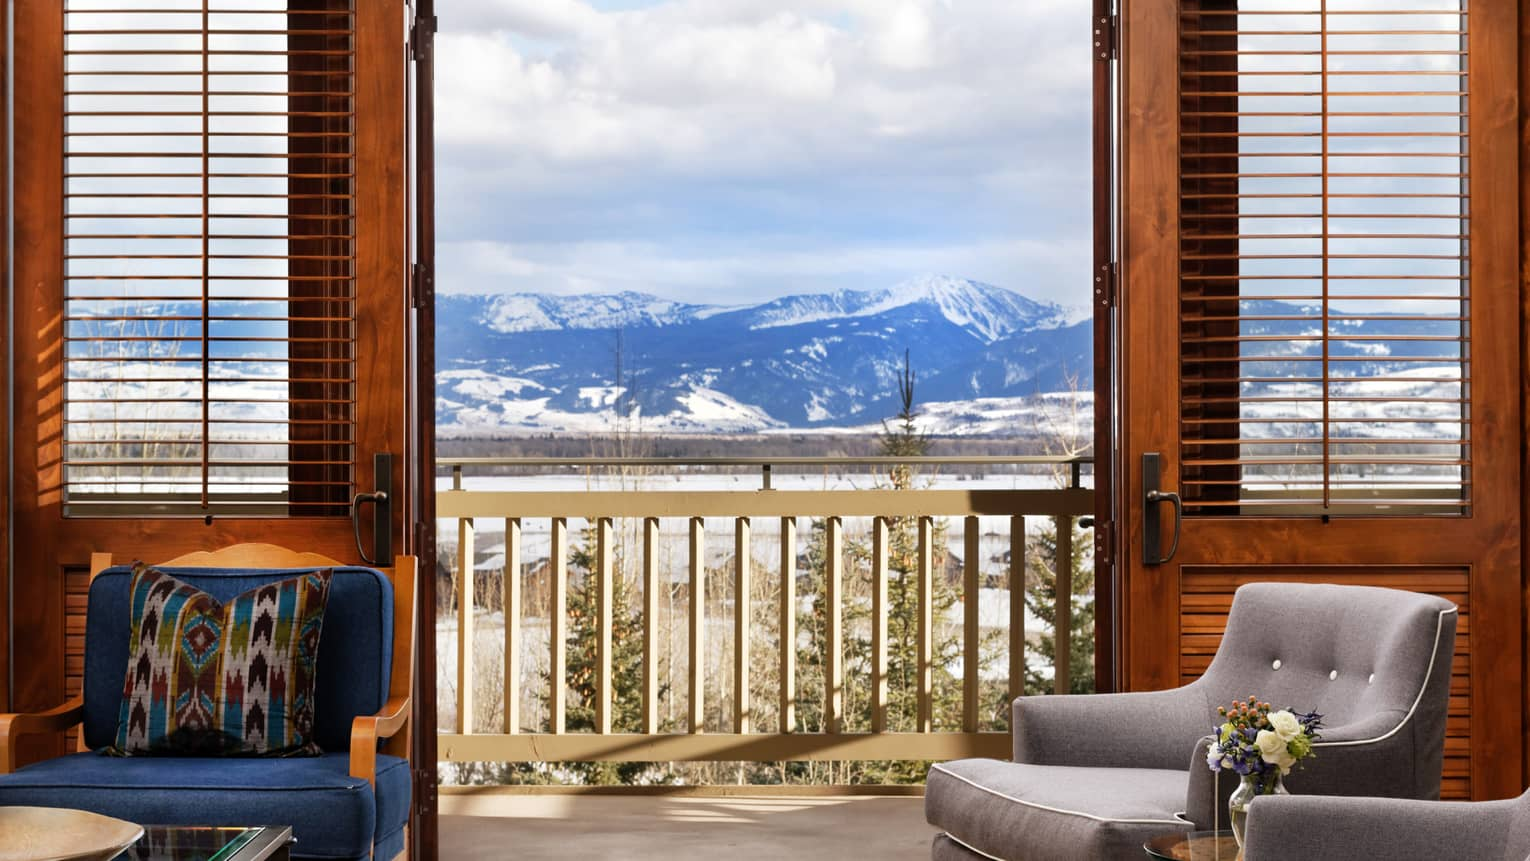 Plush chairs in a room with a wooden balcony overlooking the mountain peaks